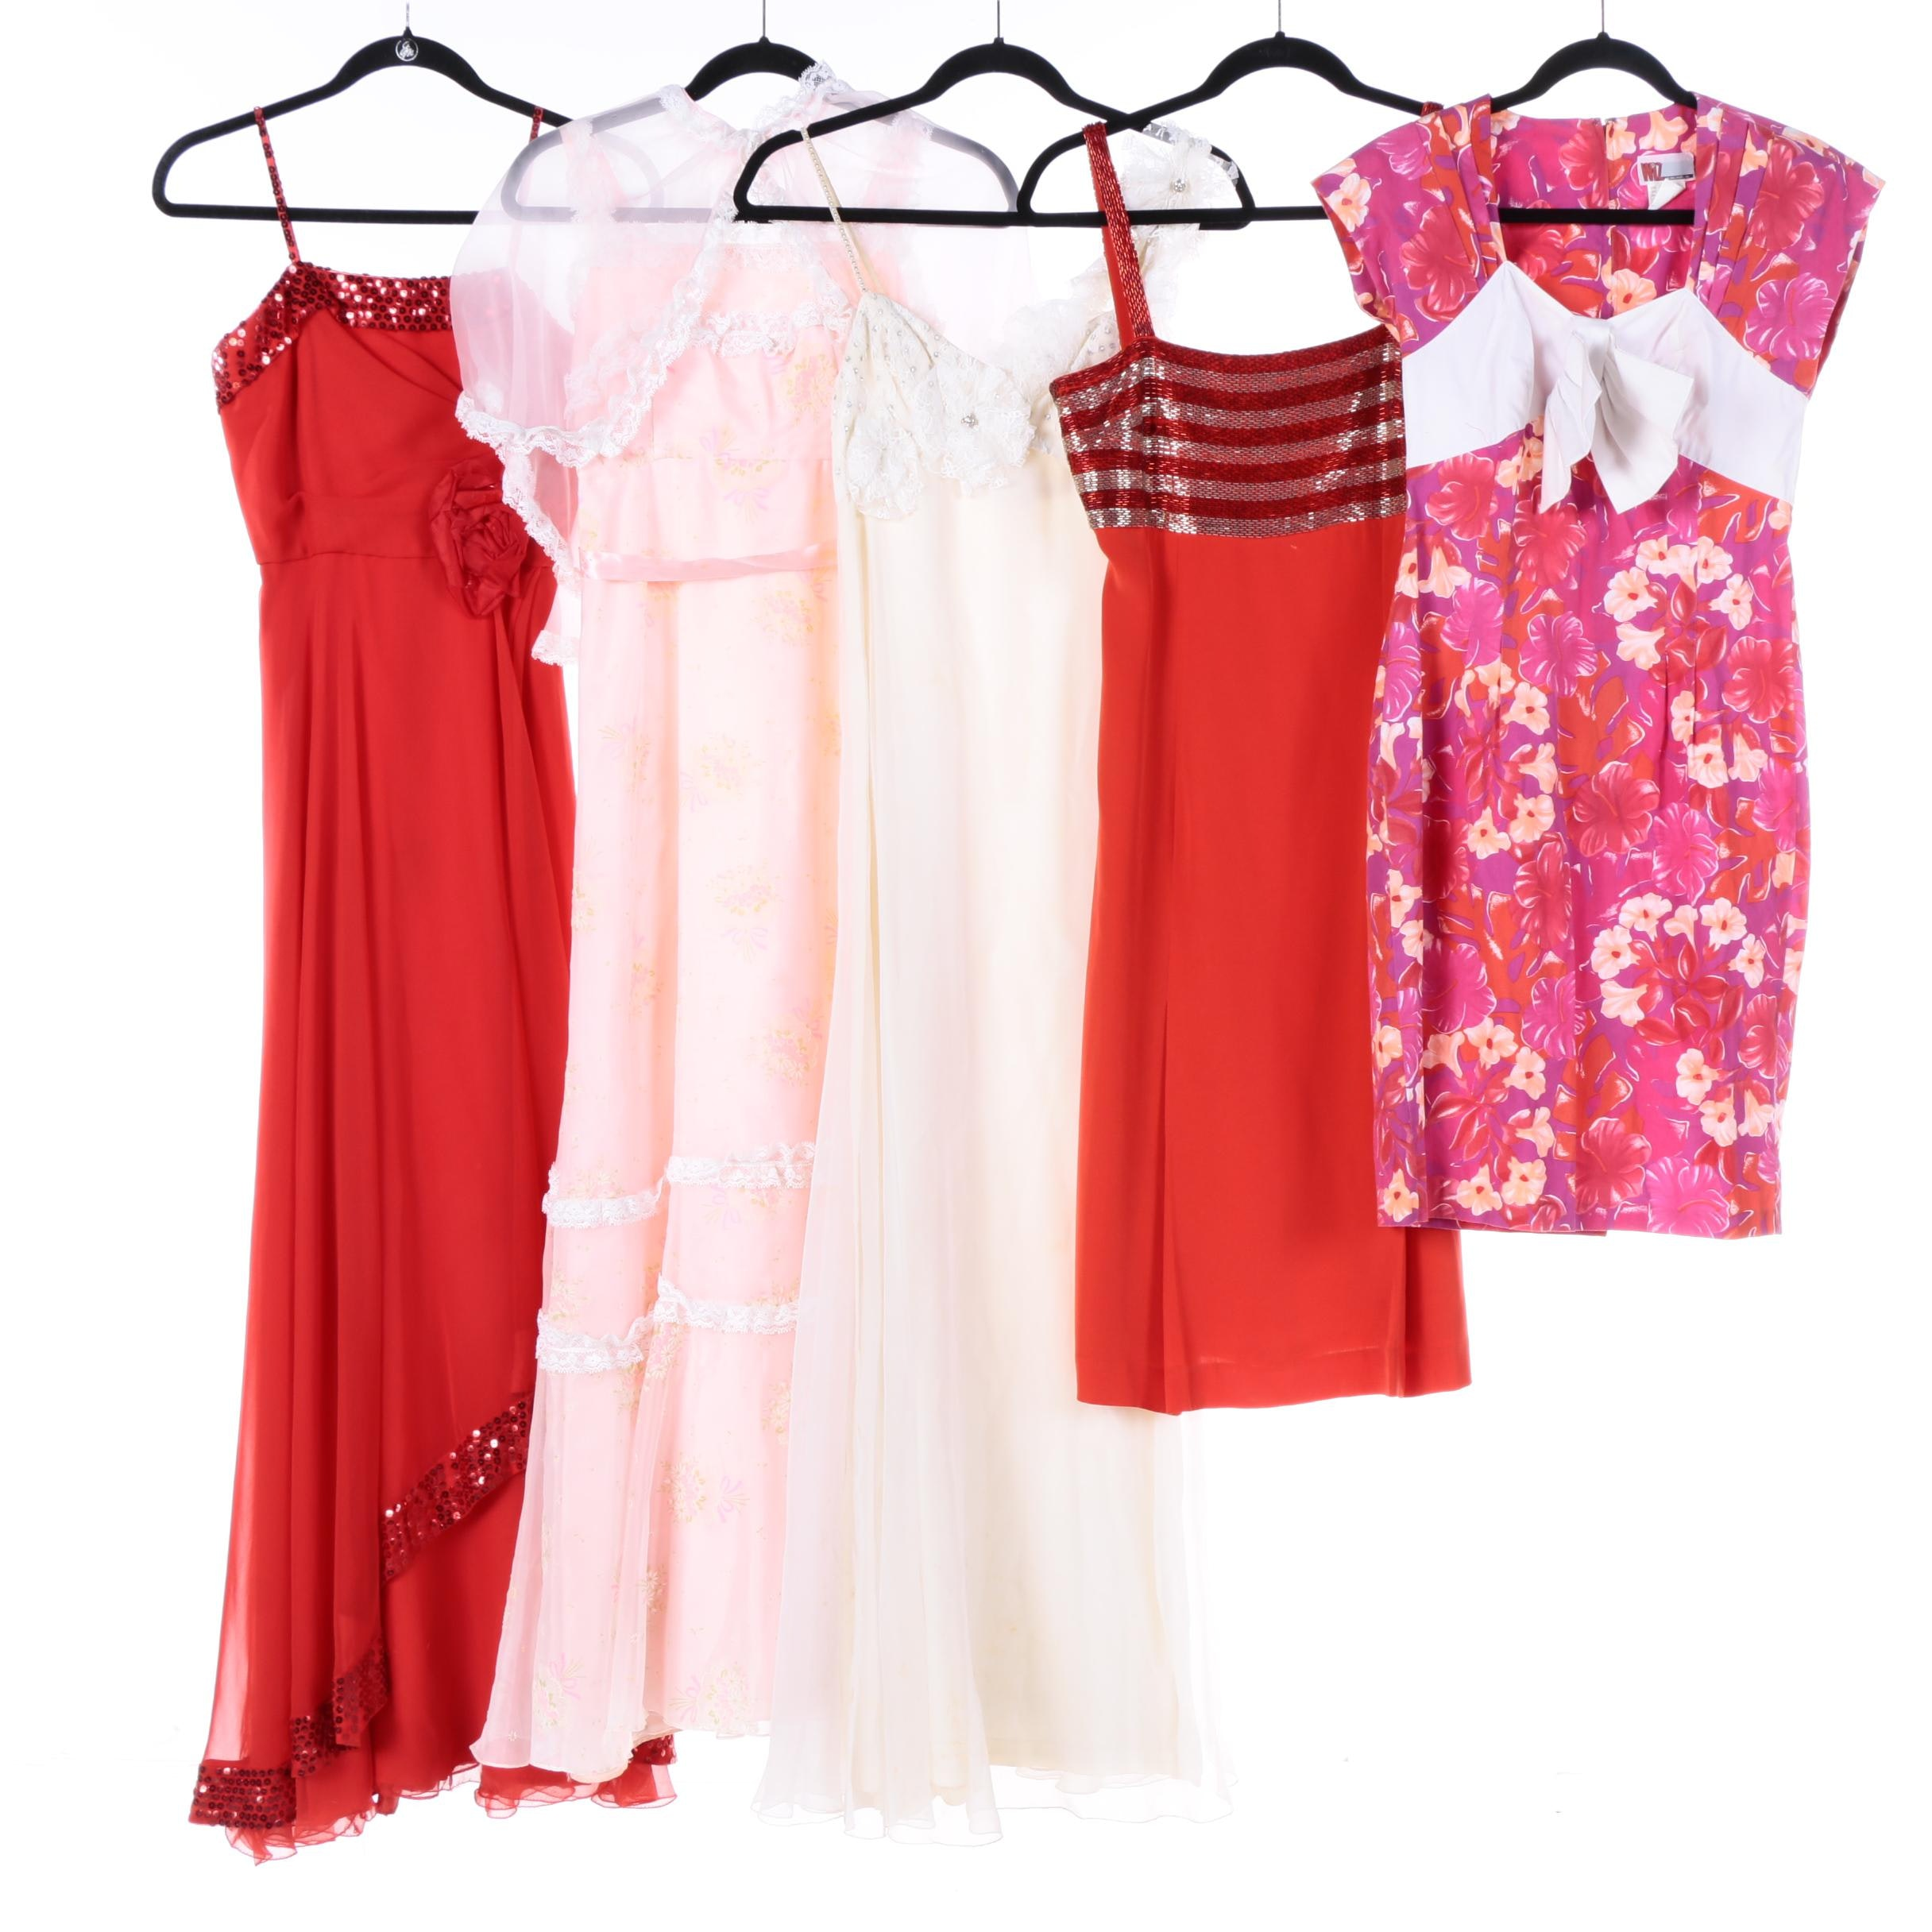 Vintage Formal Dresses Including D'ore and Mike Benet